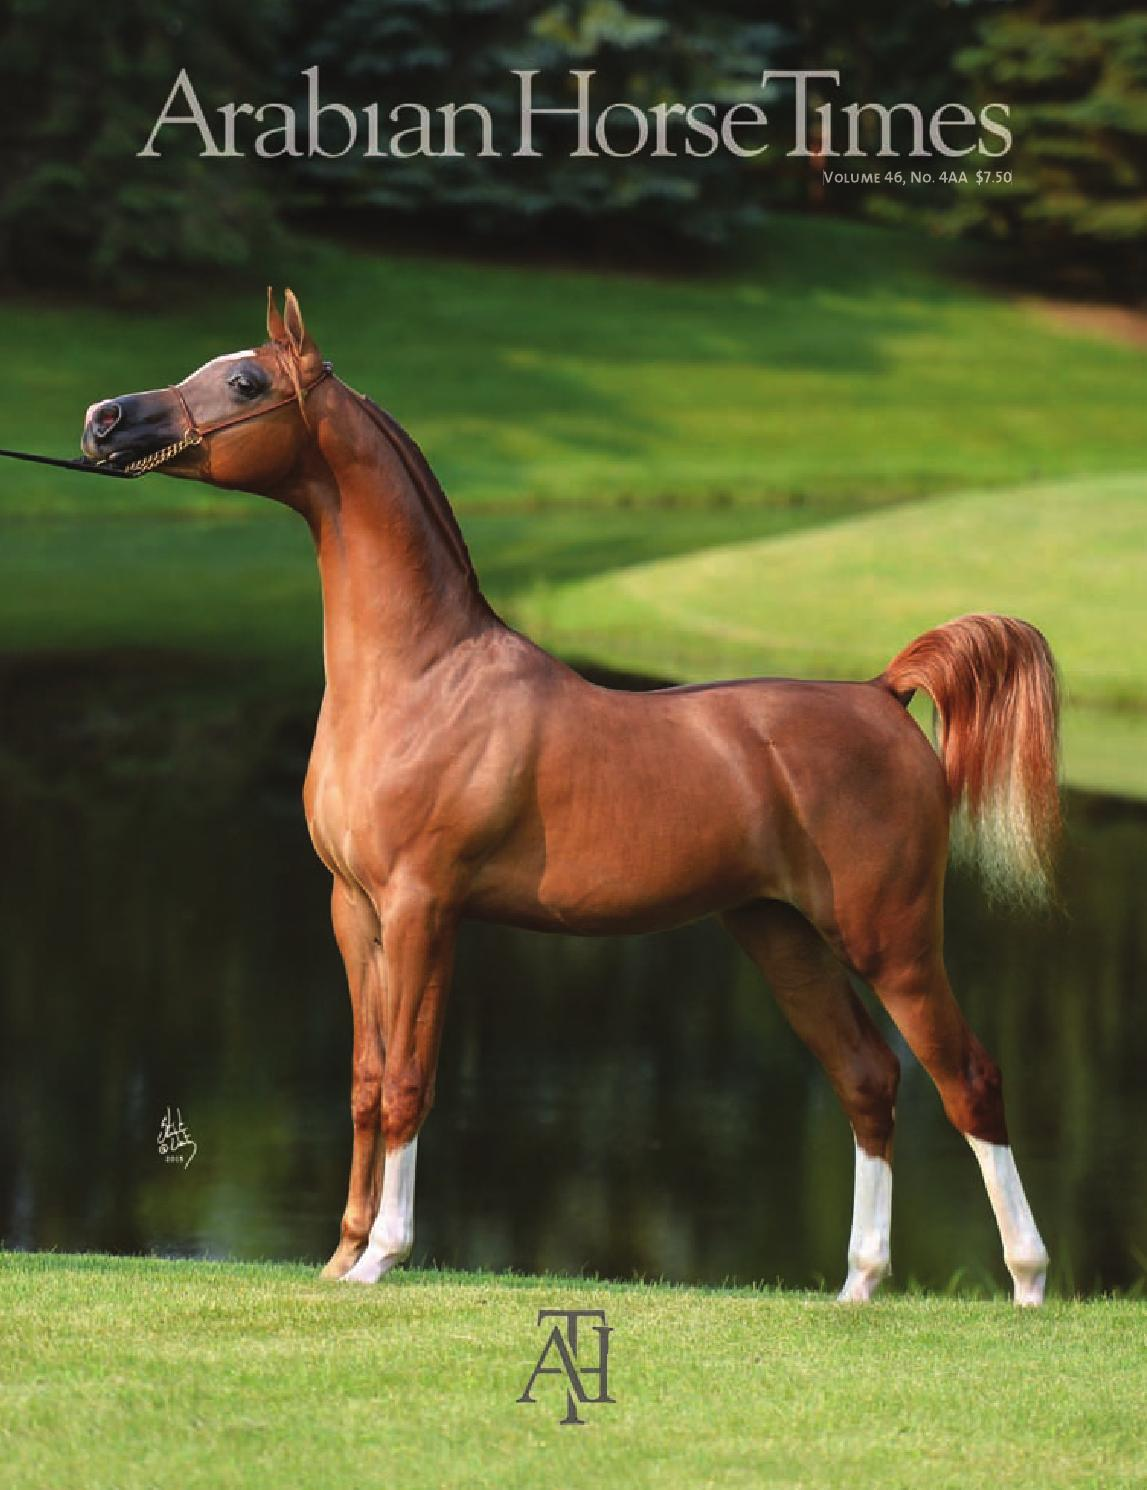 Arabian Horse Times Vol 46 No 4aa By Arabian Horse Times Issuu